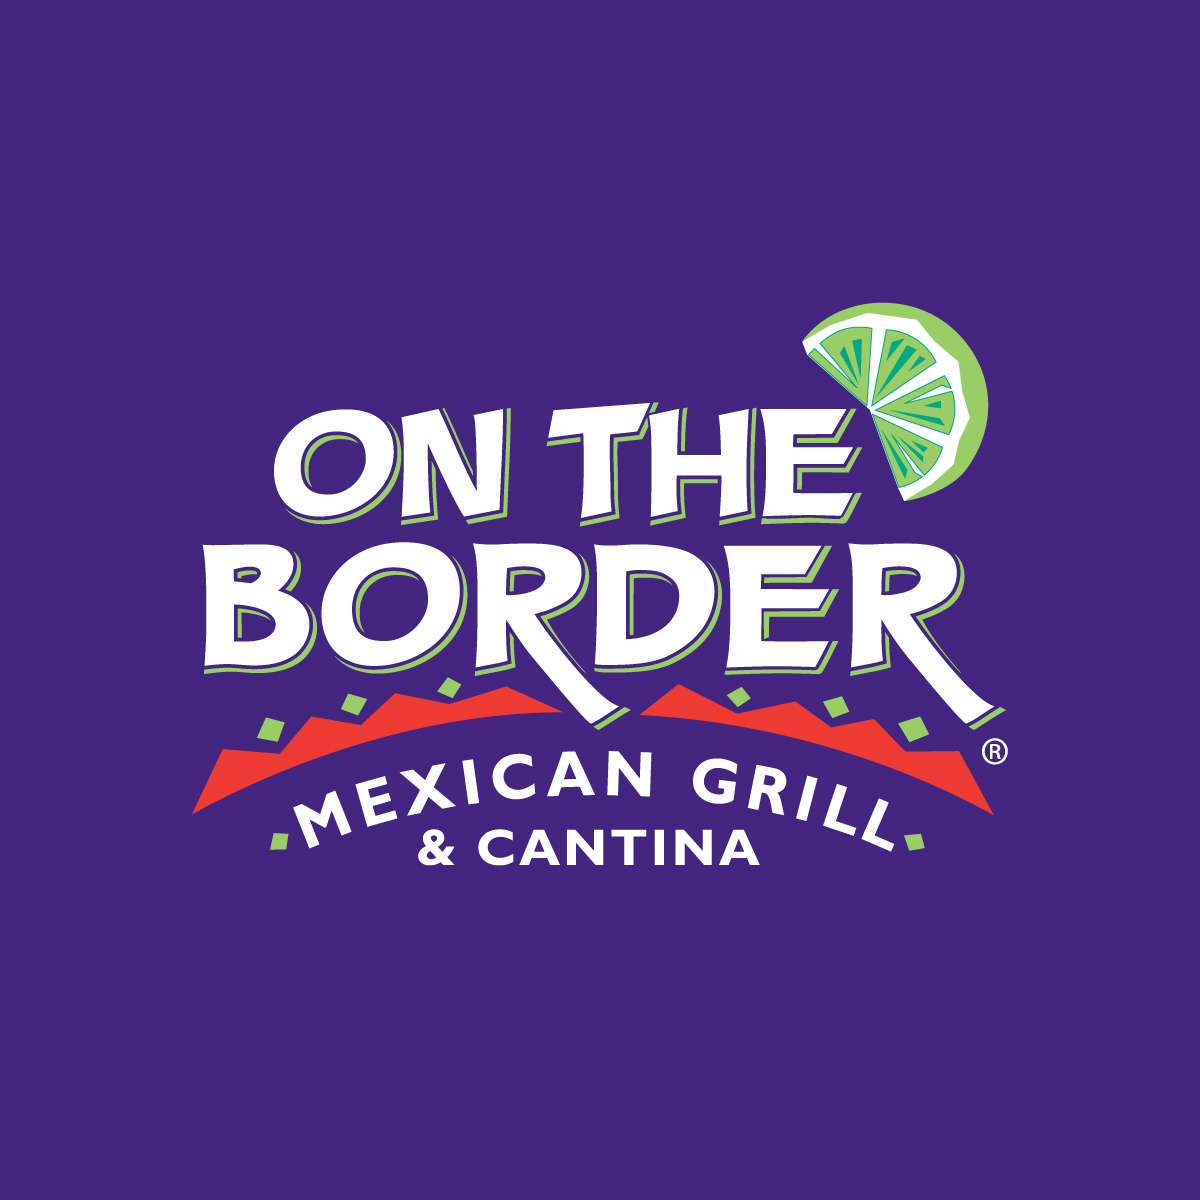 On The Border Mexican Grill & Cantina image 6